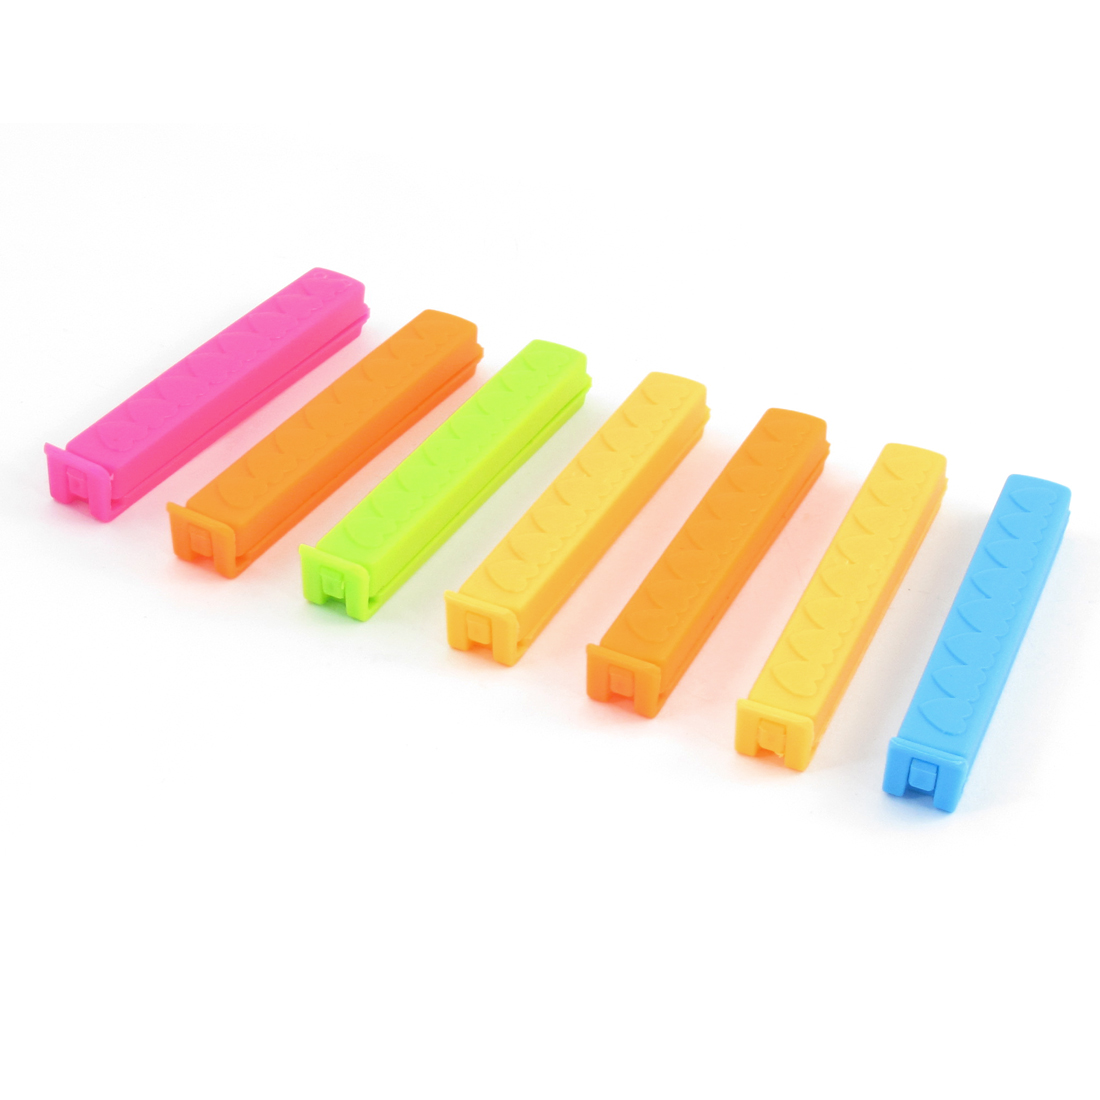 Home Kitchen Assorted Color Plastic Sealing Bag Clips 7 Pcs